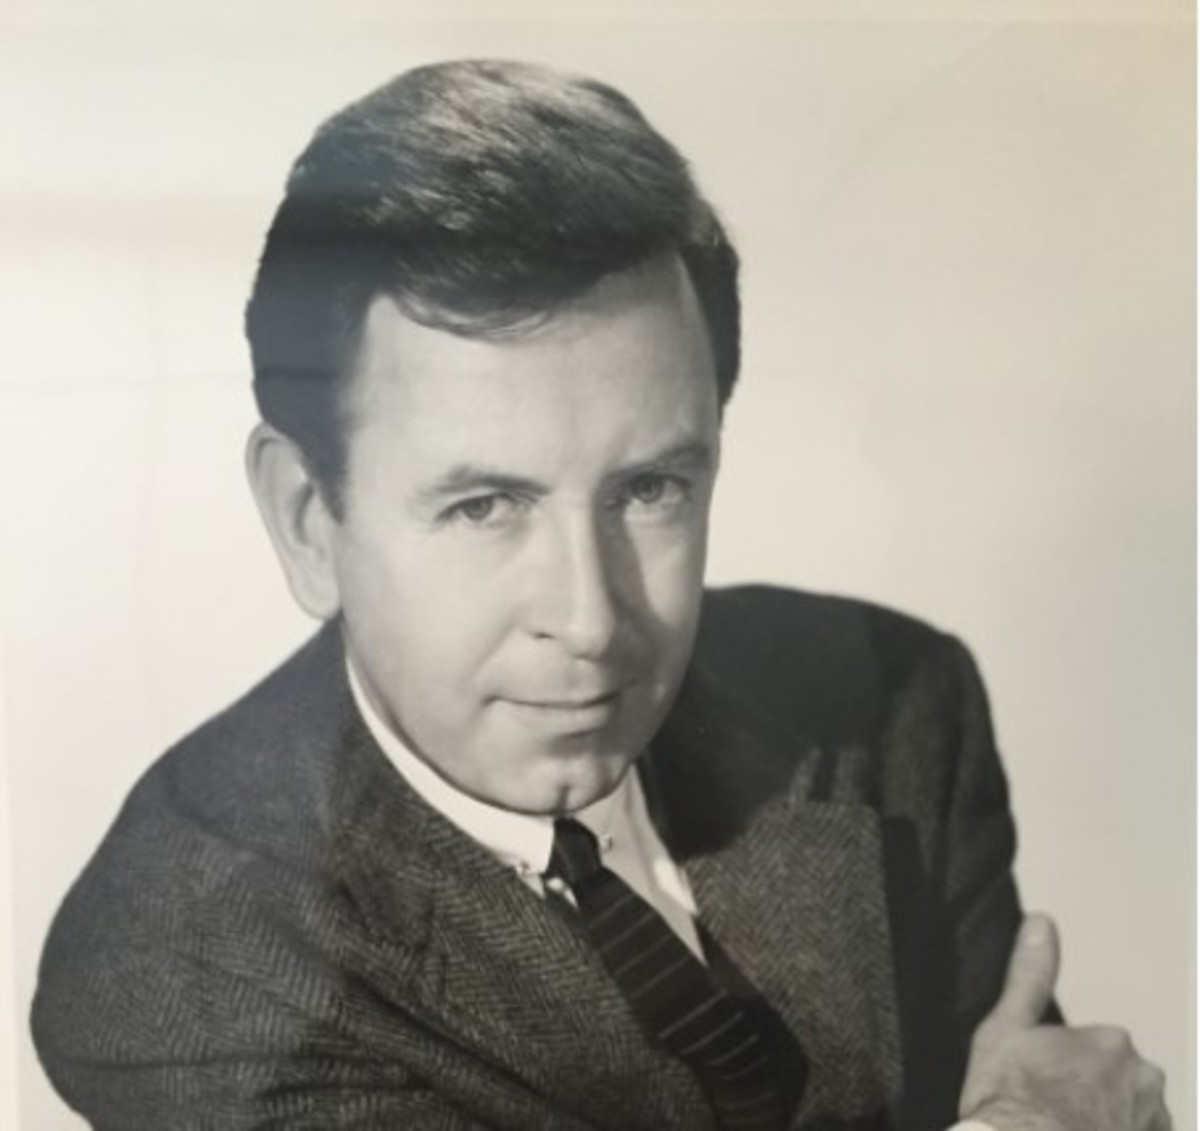 Publicity photo, circa 1963, courtesy of Laura Pursell